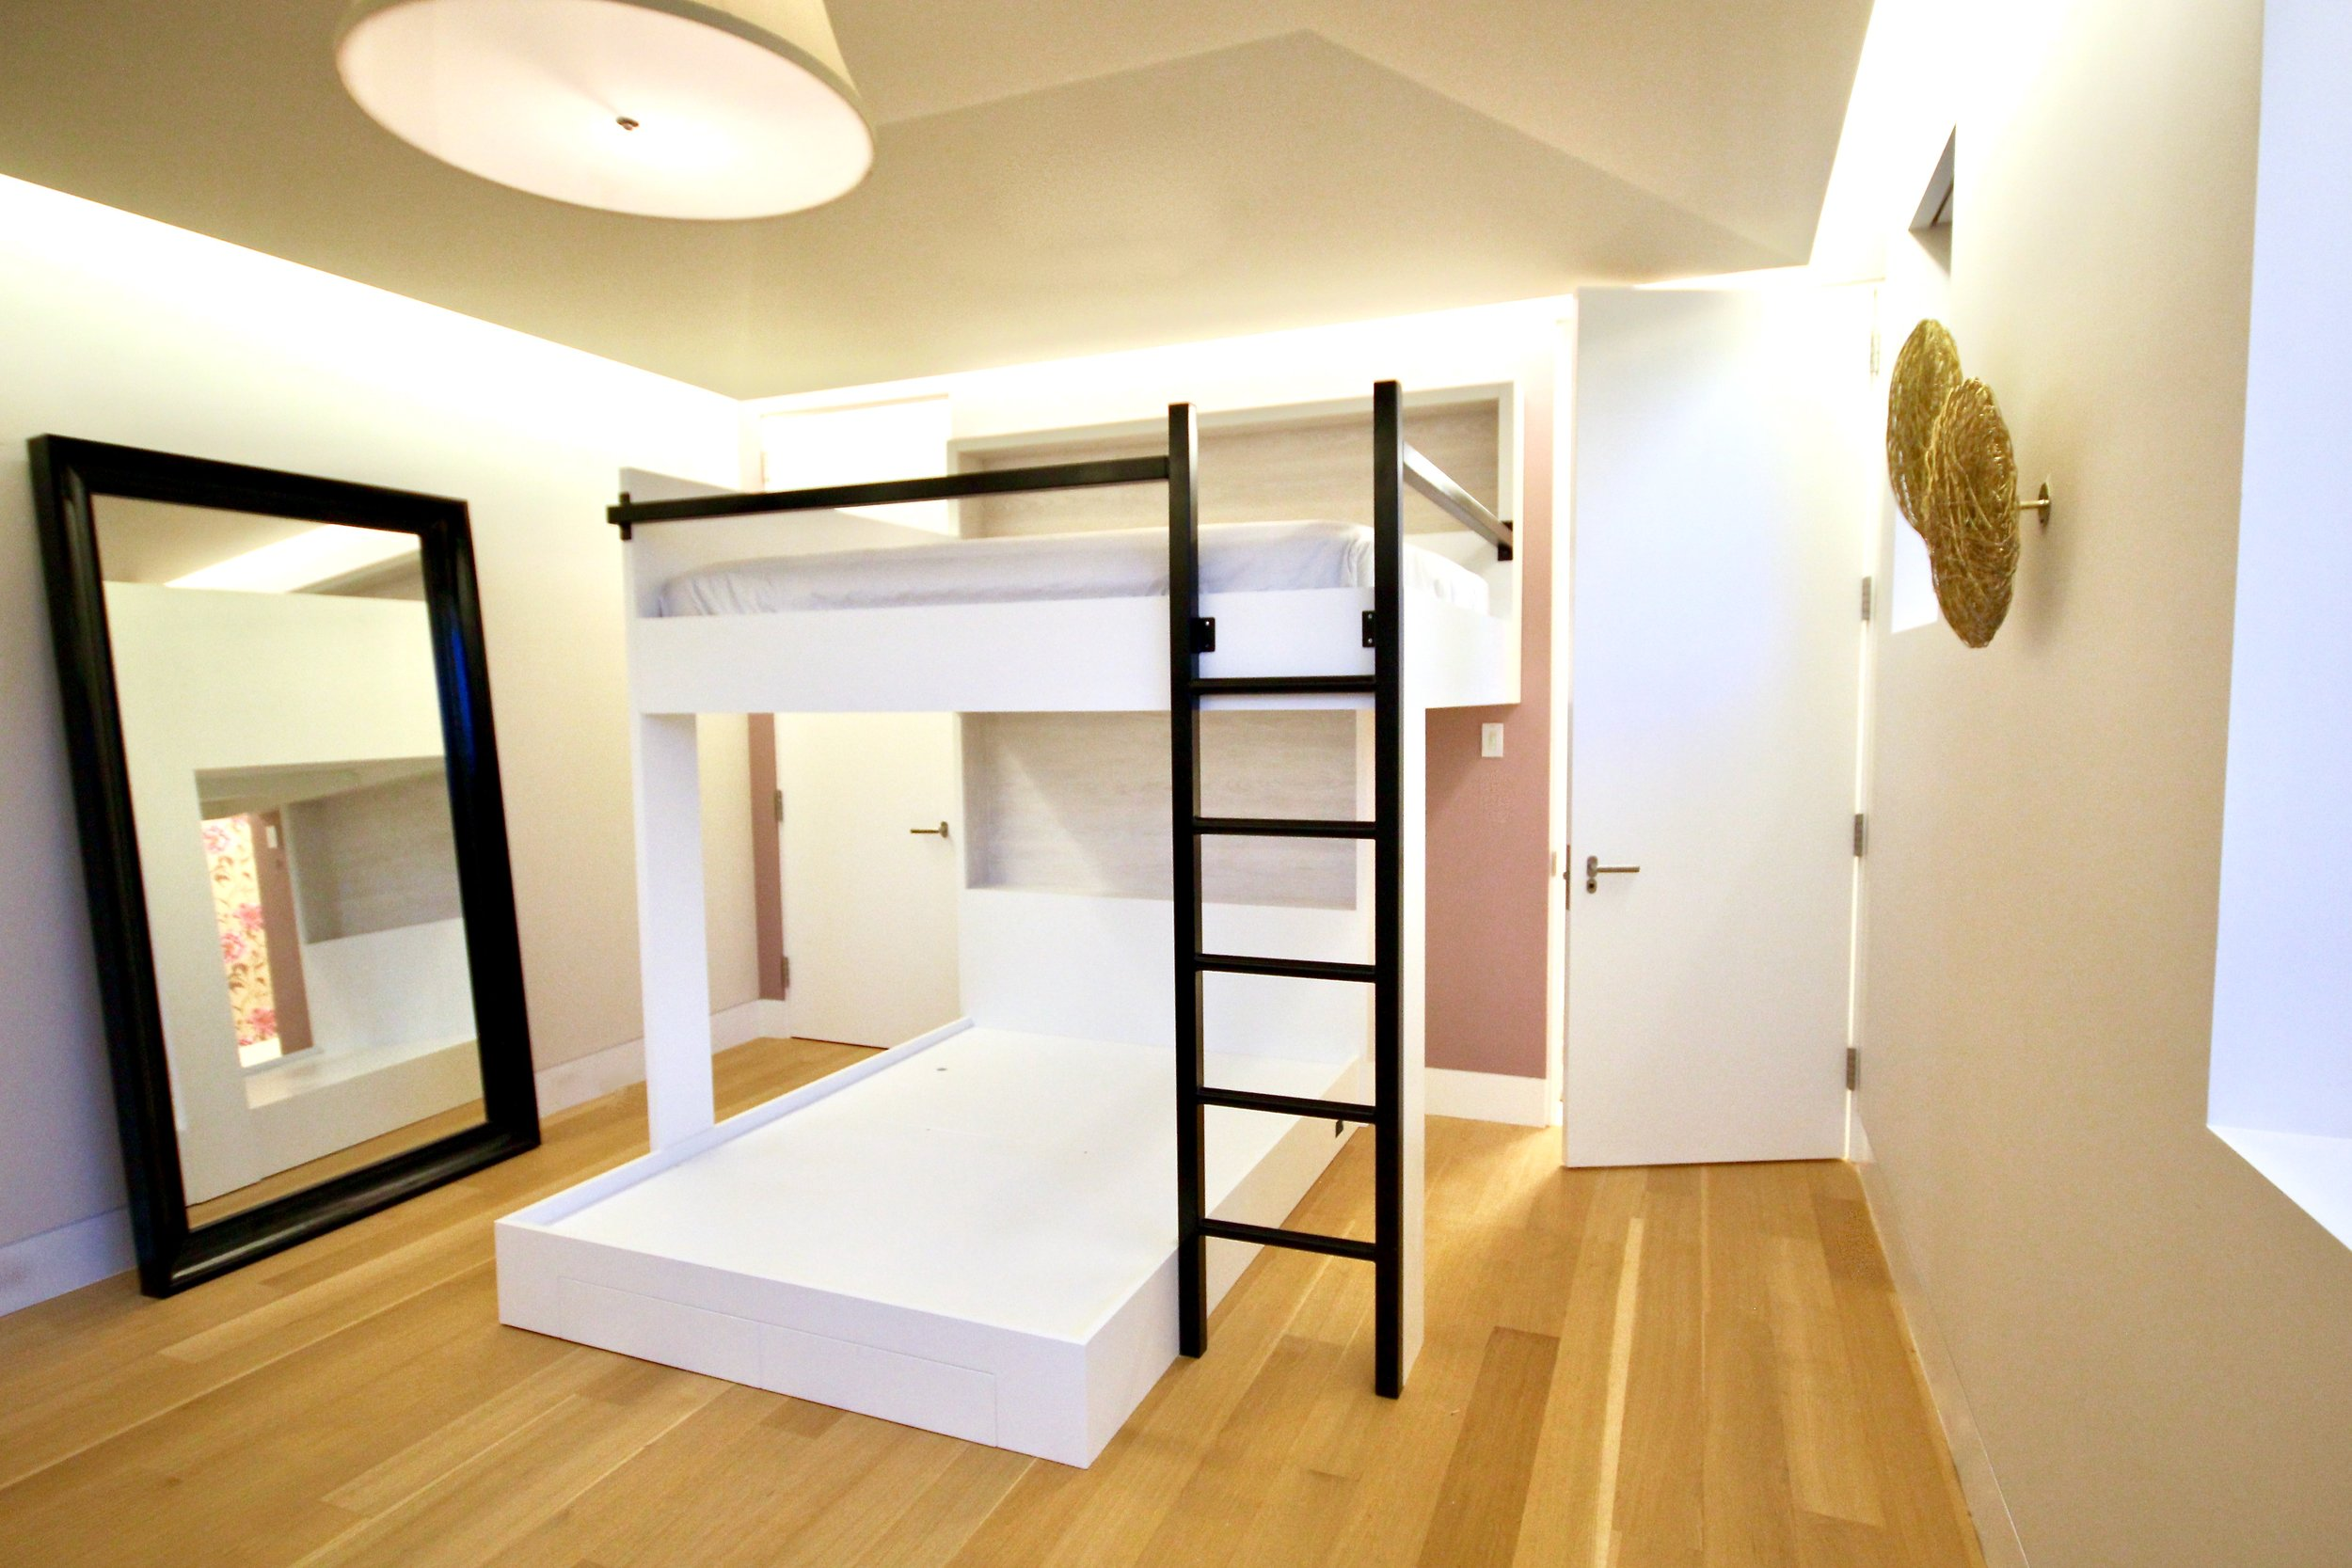 queens squared Poplar bunks - with Steel Ladder and Wall Mount